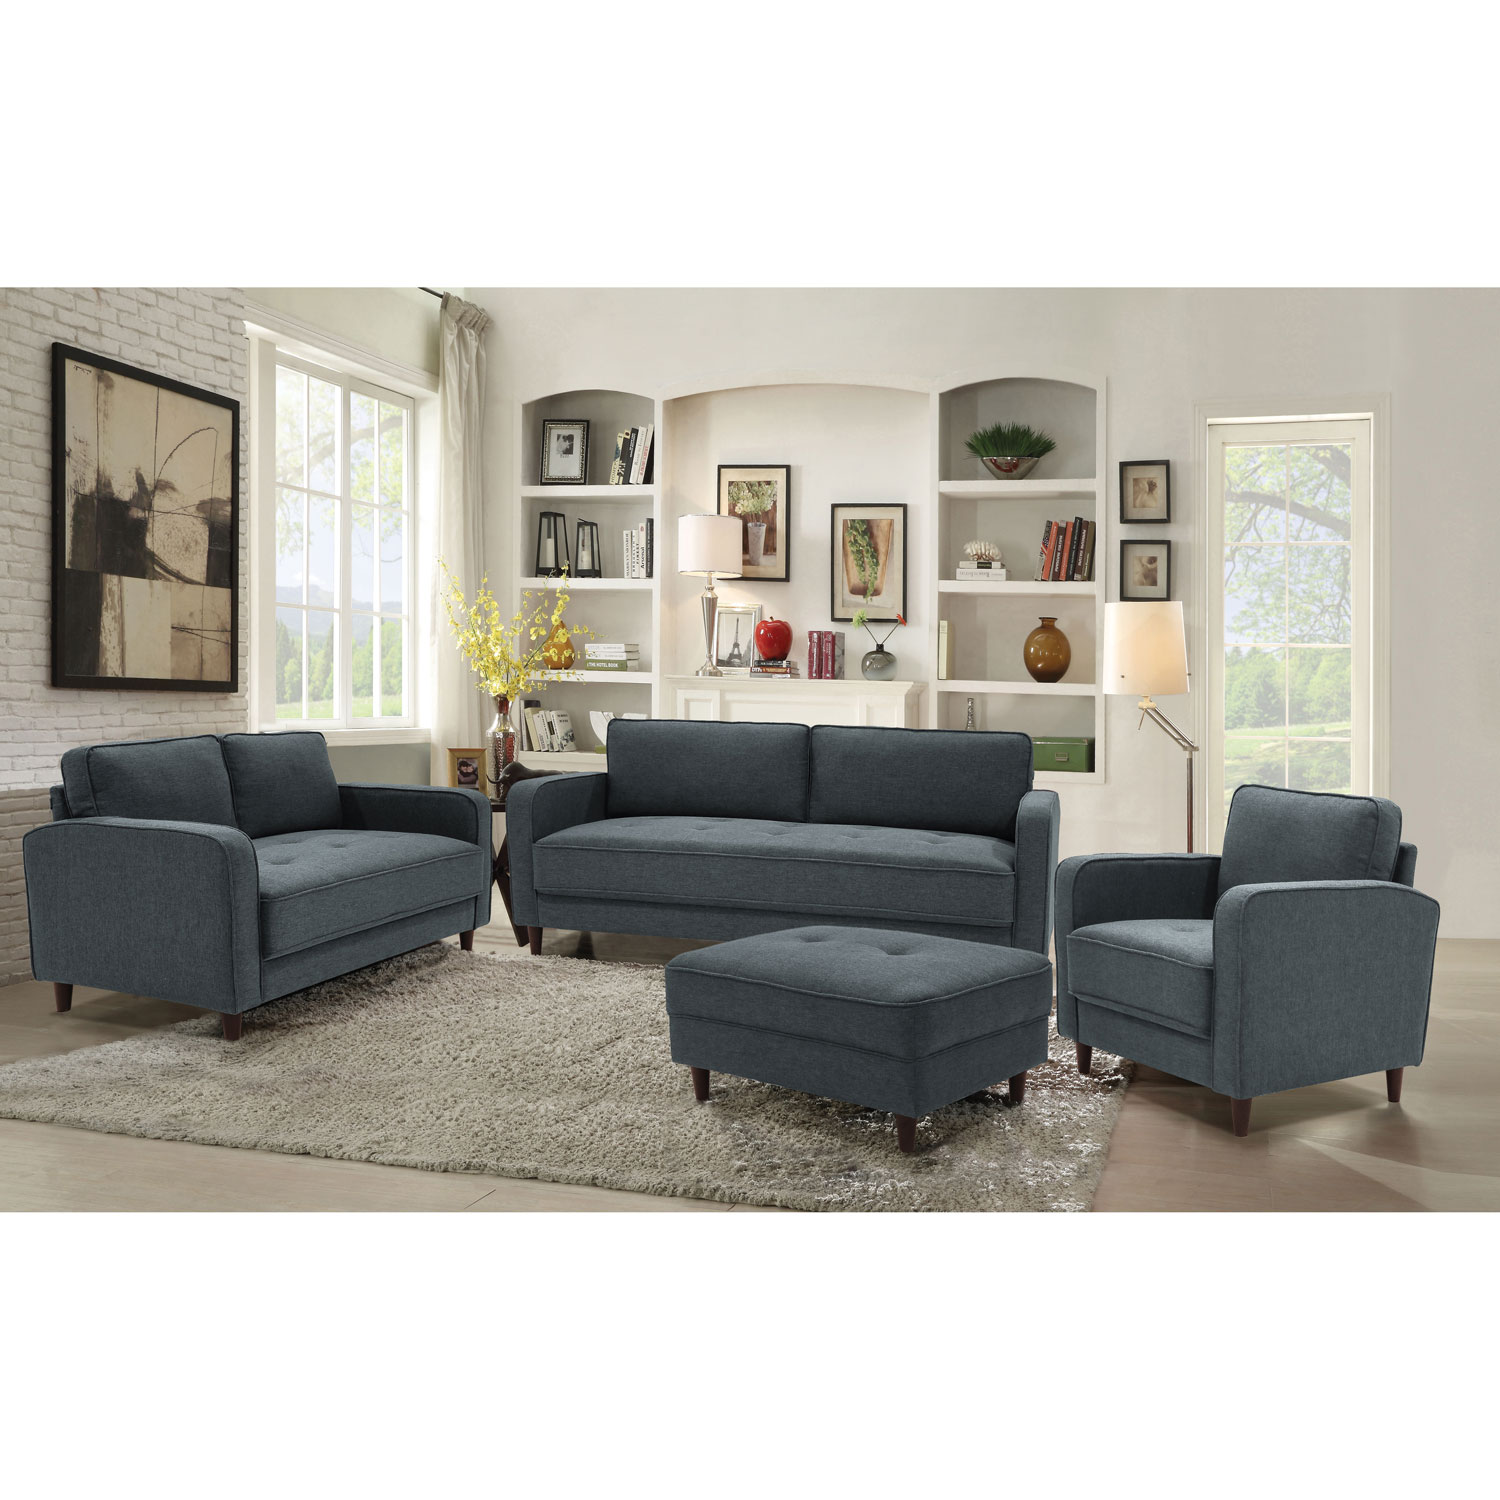 Living Room Furniture Sofa Couch Coffee Table Best Buy Canada